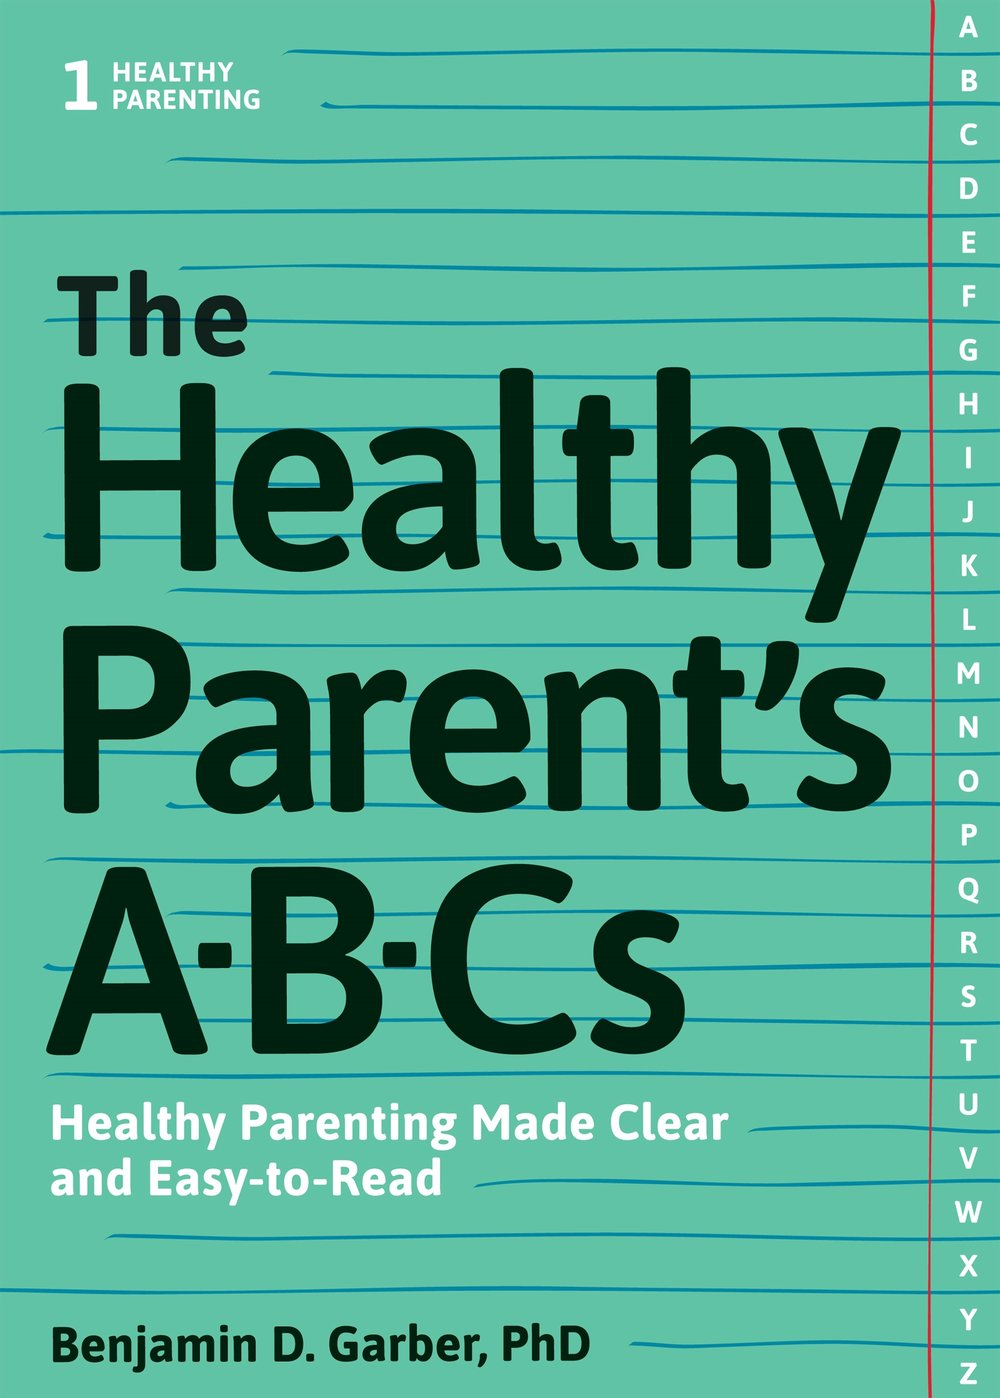 Copy of Healthy Parenting Series: Book #1